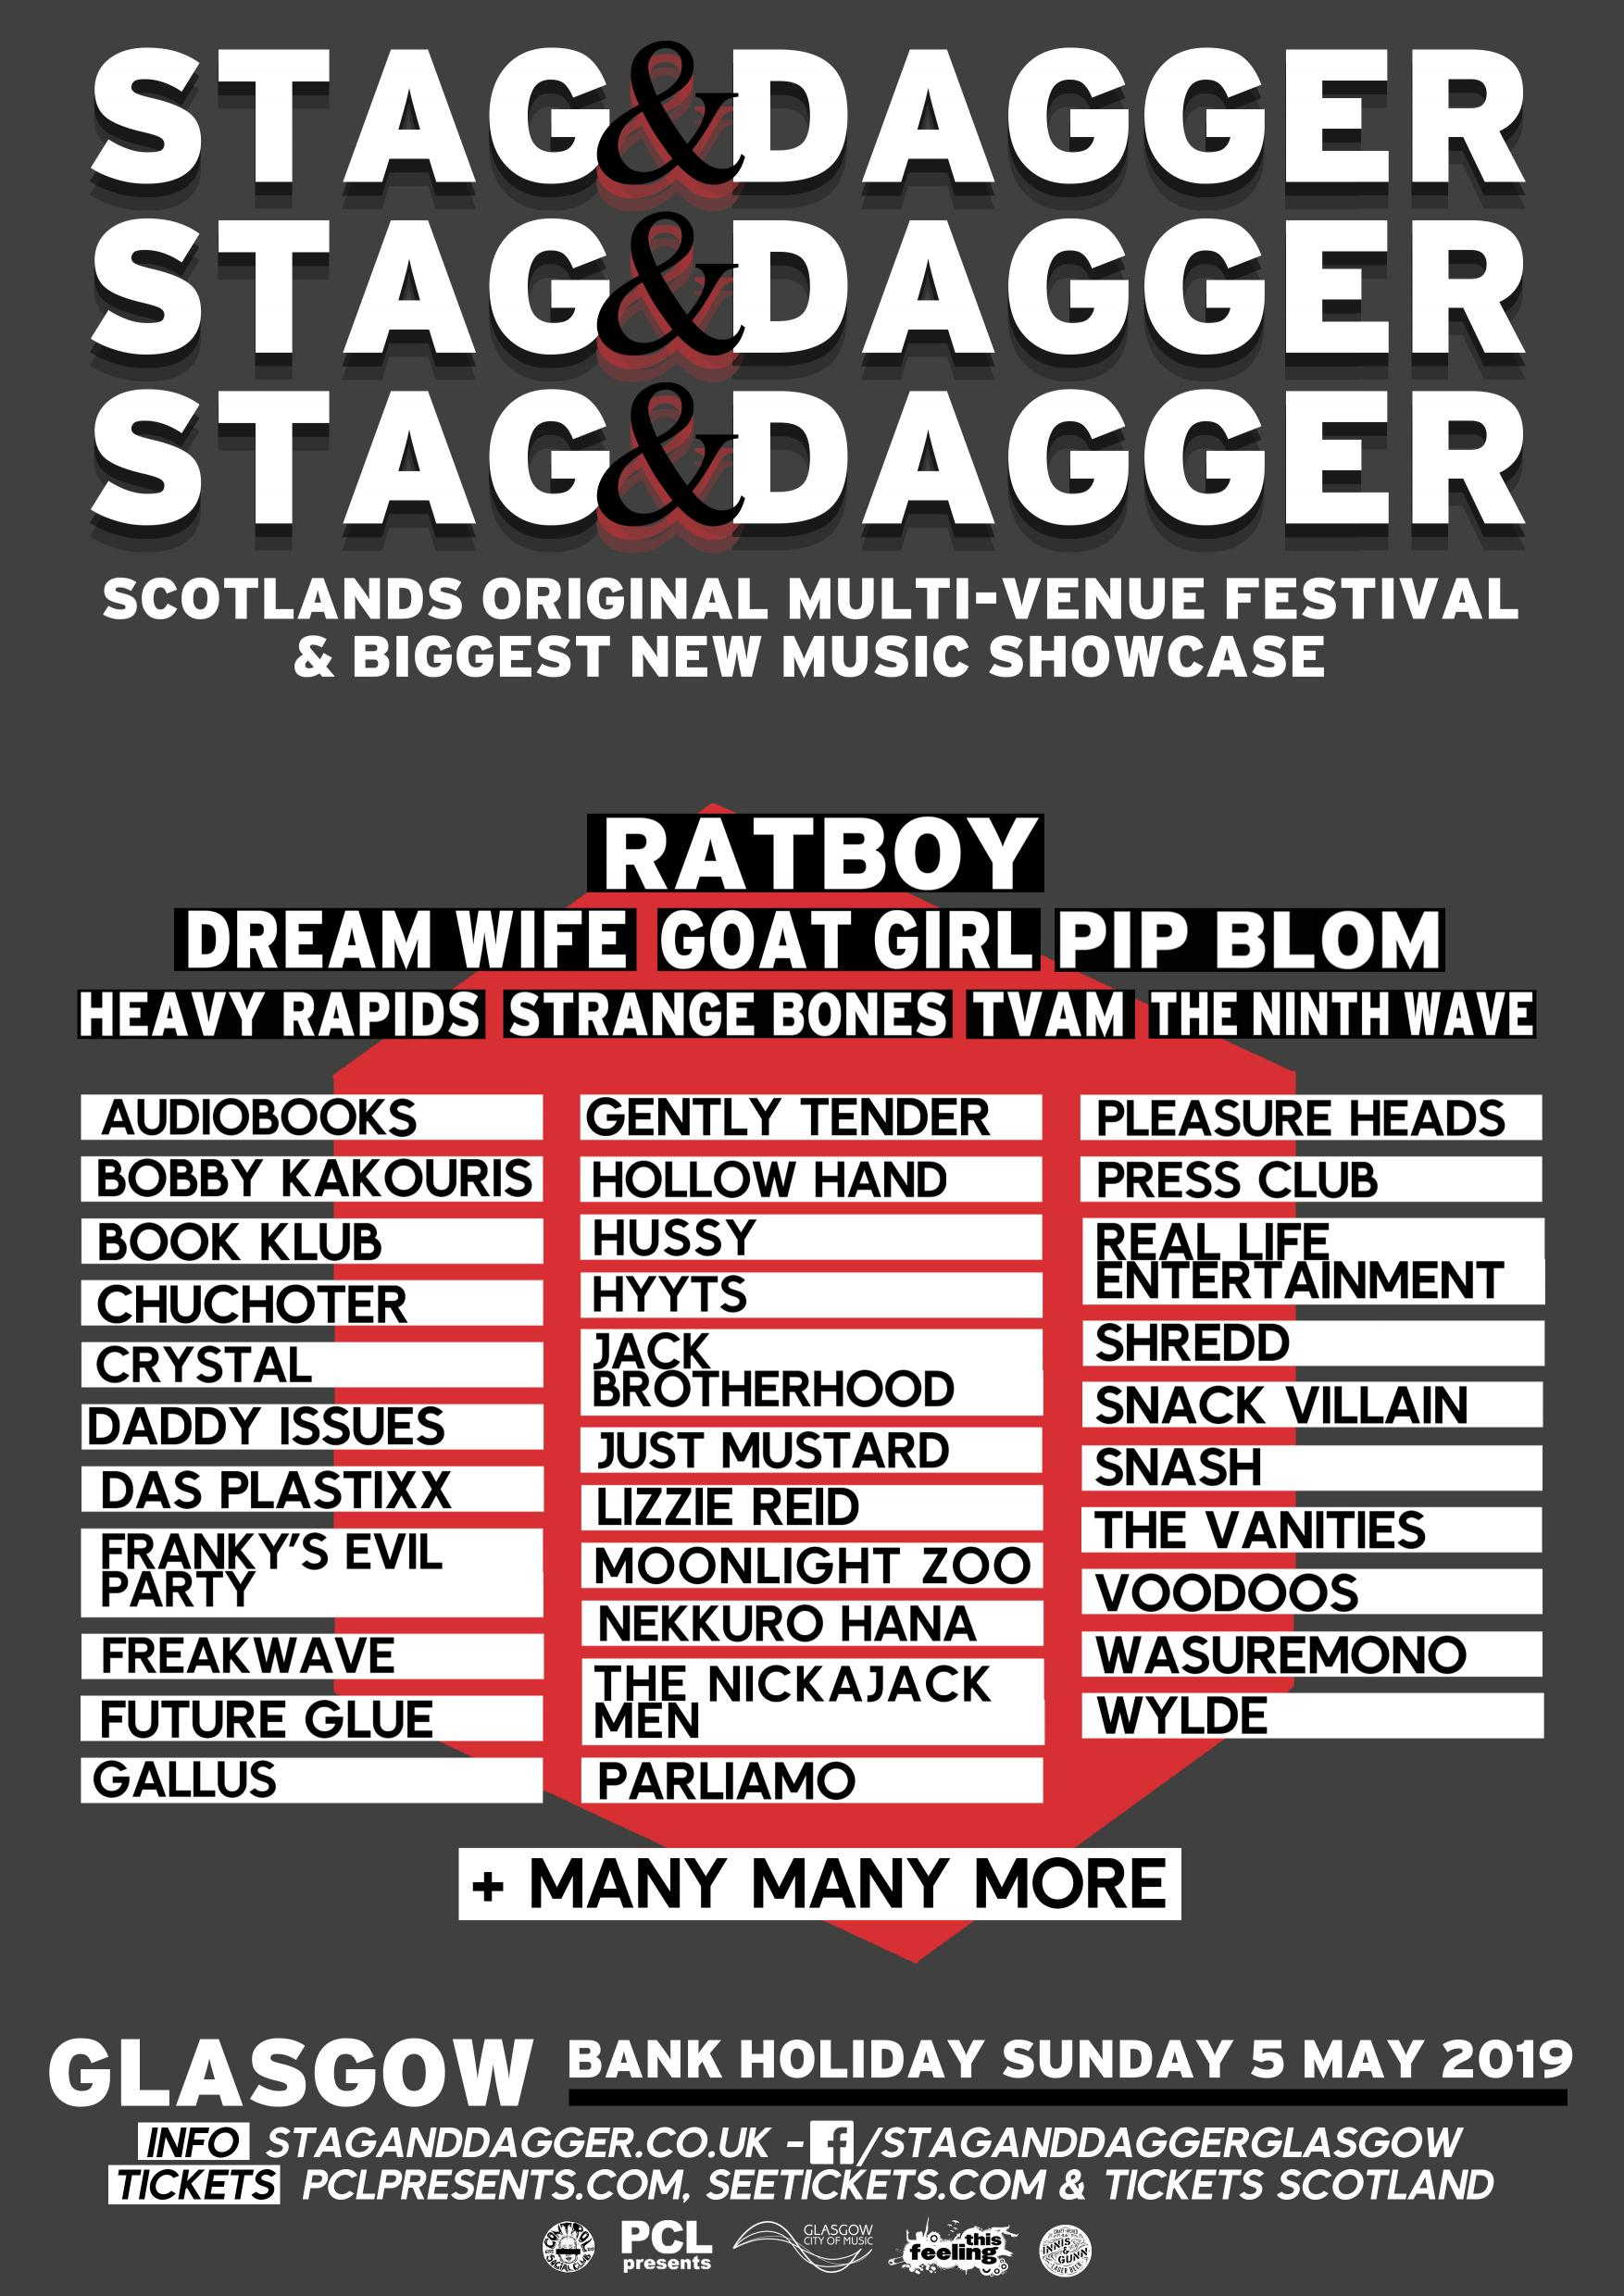 e3876f16d Stag & Dagger returns this May, 2019